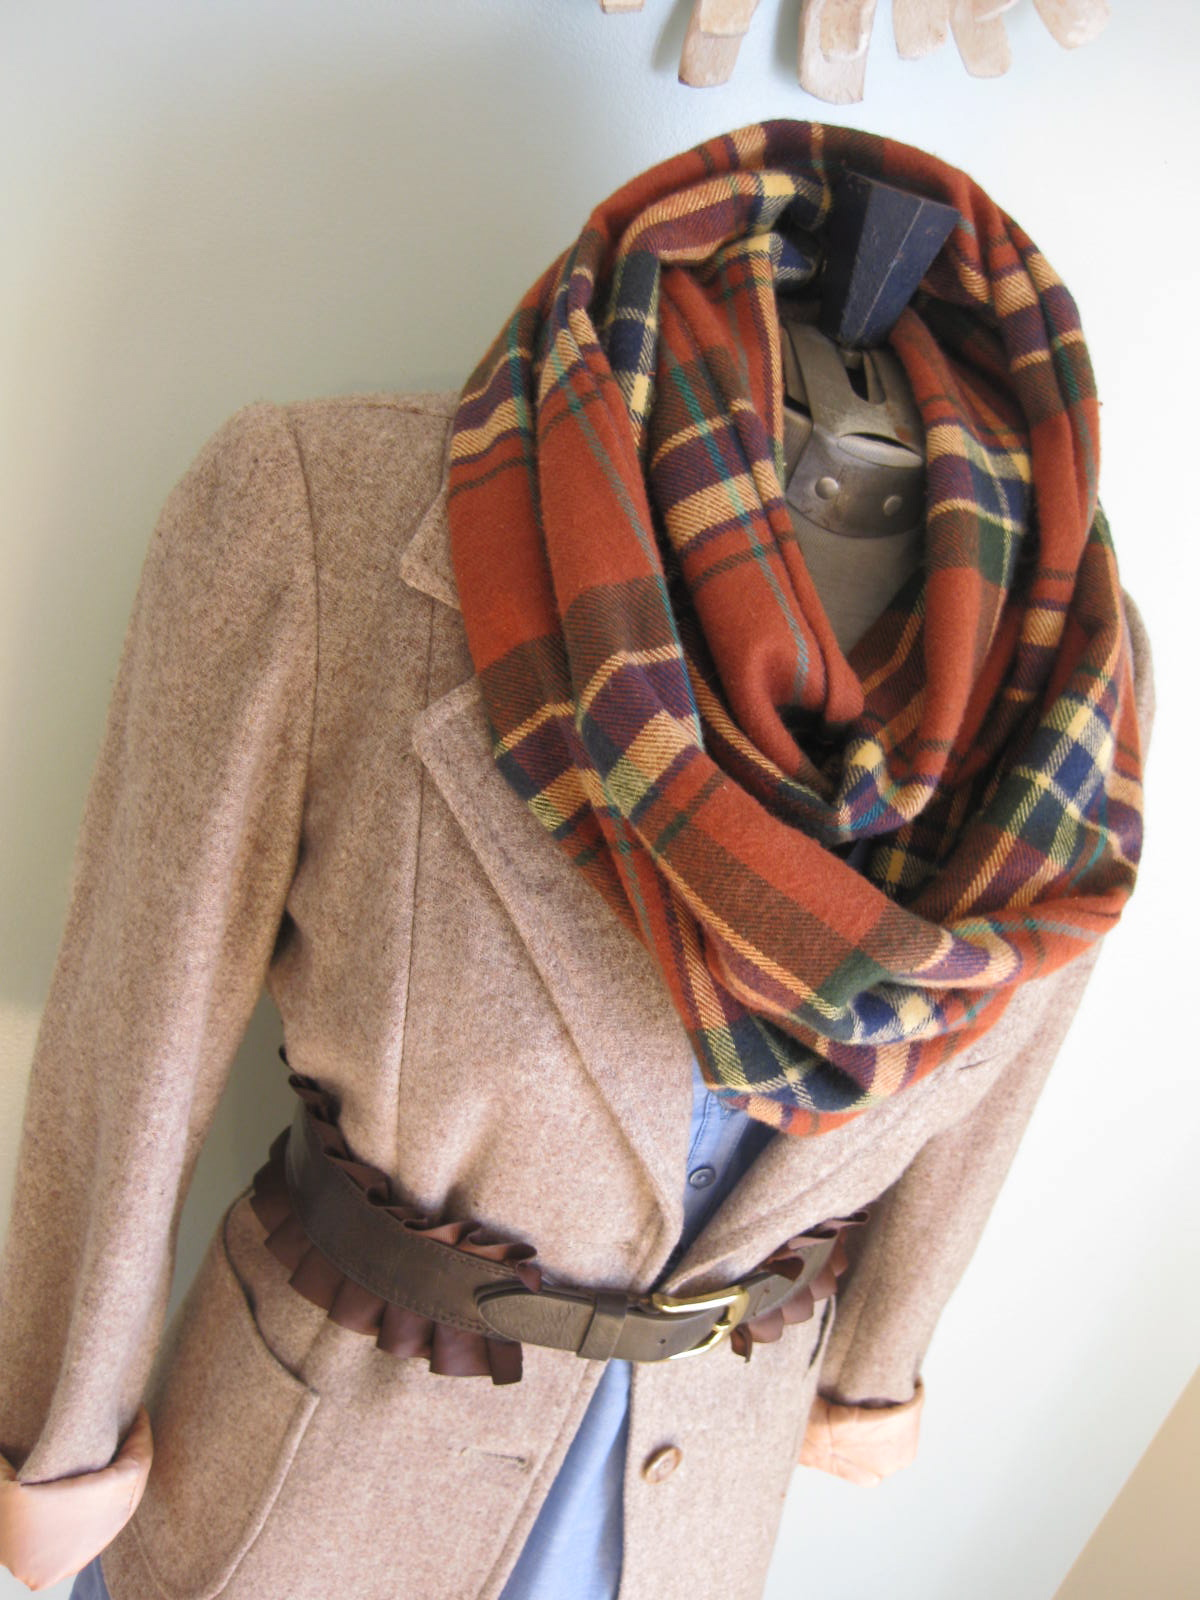 A scarf, plural scarves, is a piece of fabric worn around the neck for warmth, sun protection, cleanliness, fashion, or religious reasons. They can be made in a variety of different materials such as wool, cashmere, linen or cotton.